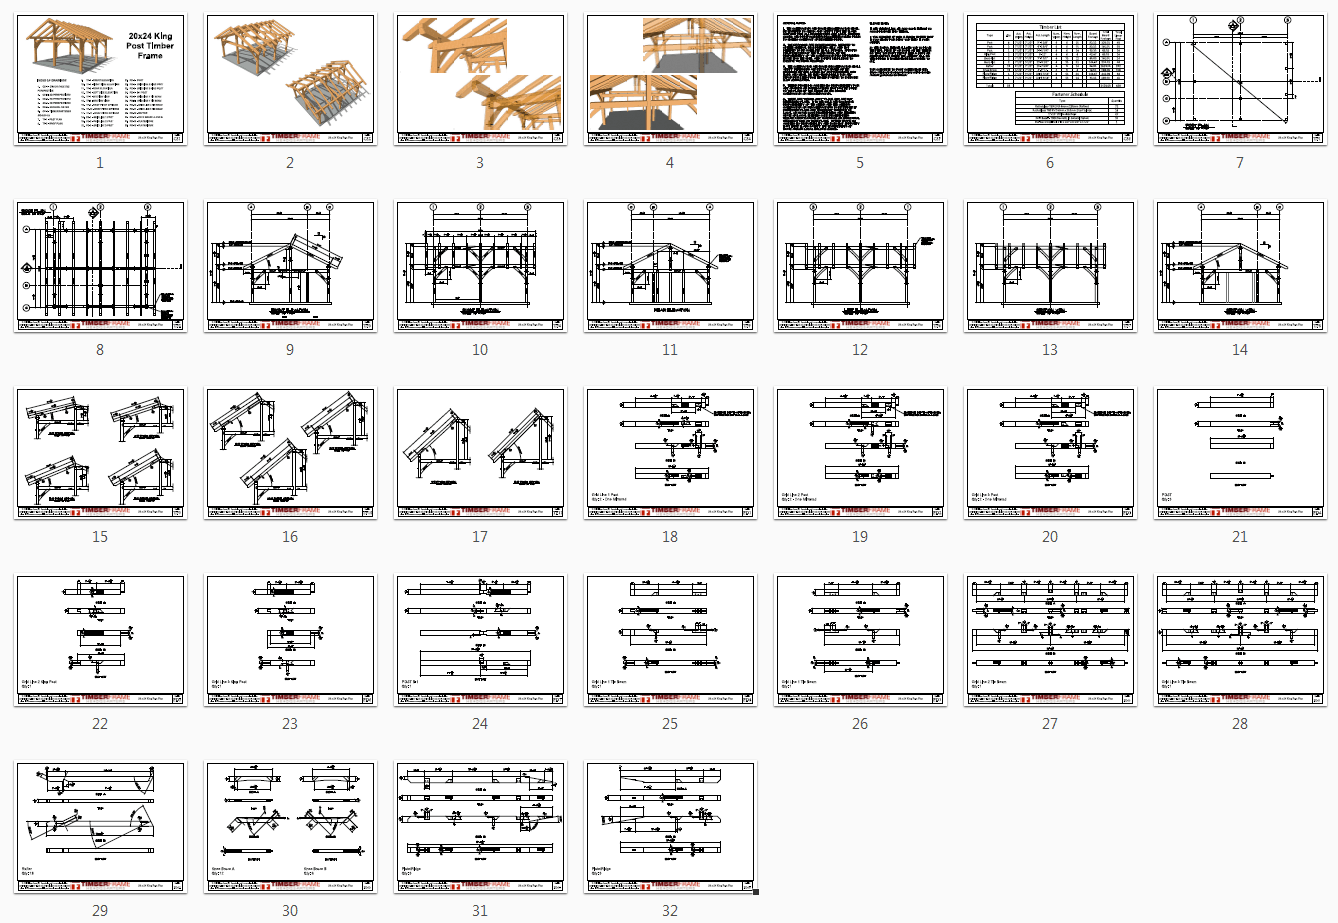 20x24 King Post Plan Overview